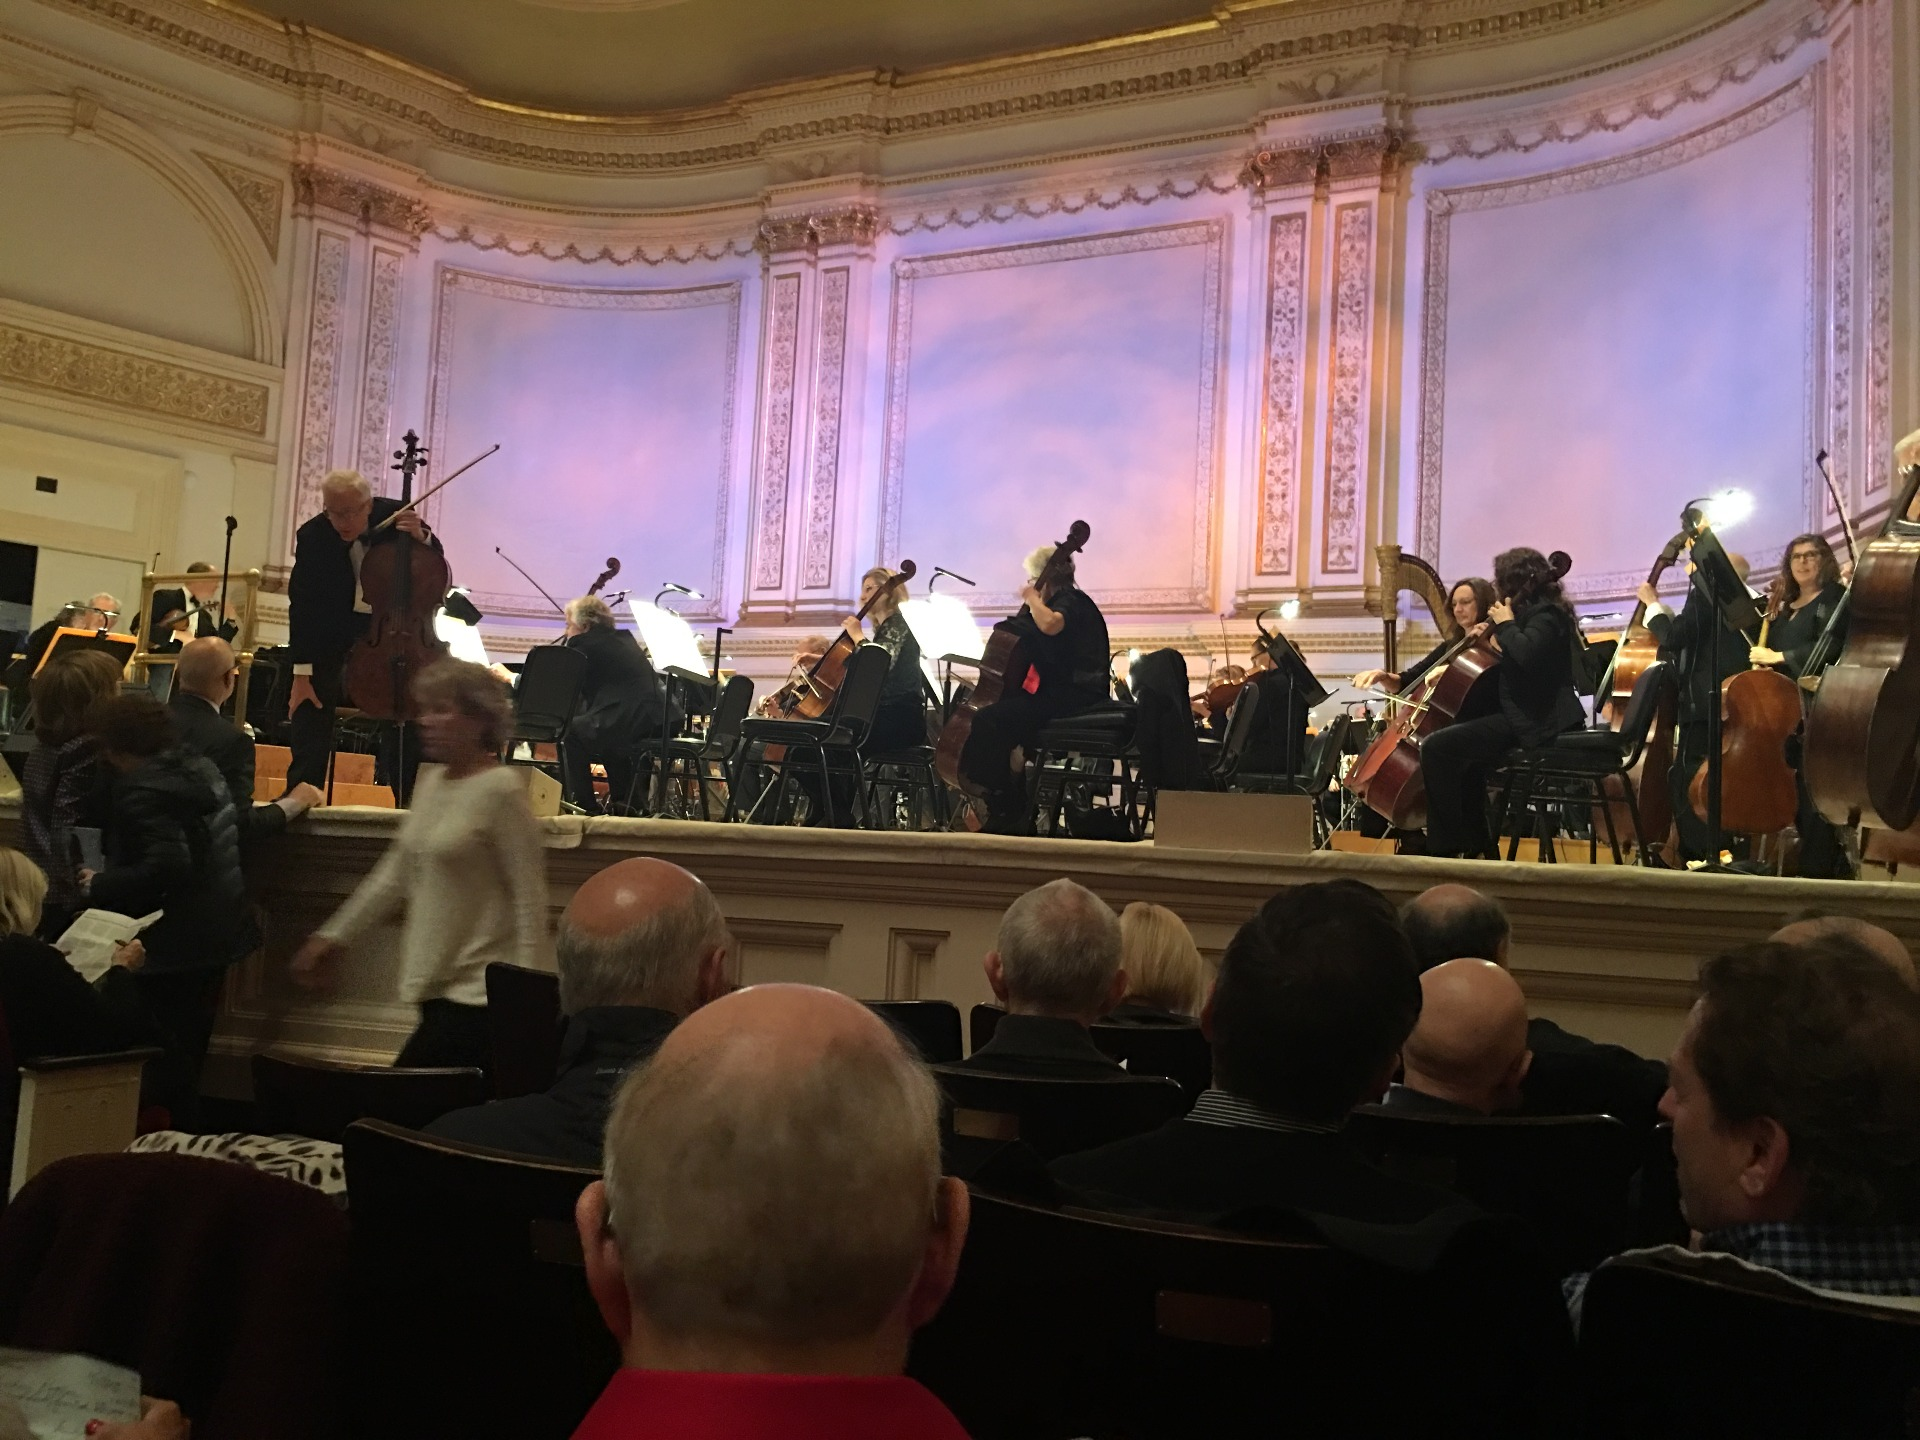 Carnegie Hall Section Parquet R Row E Seat 1O